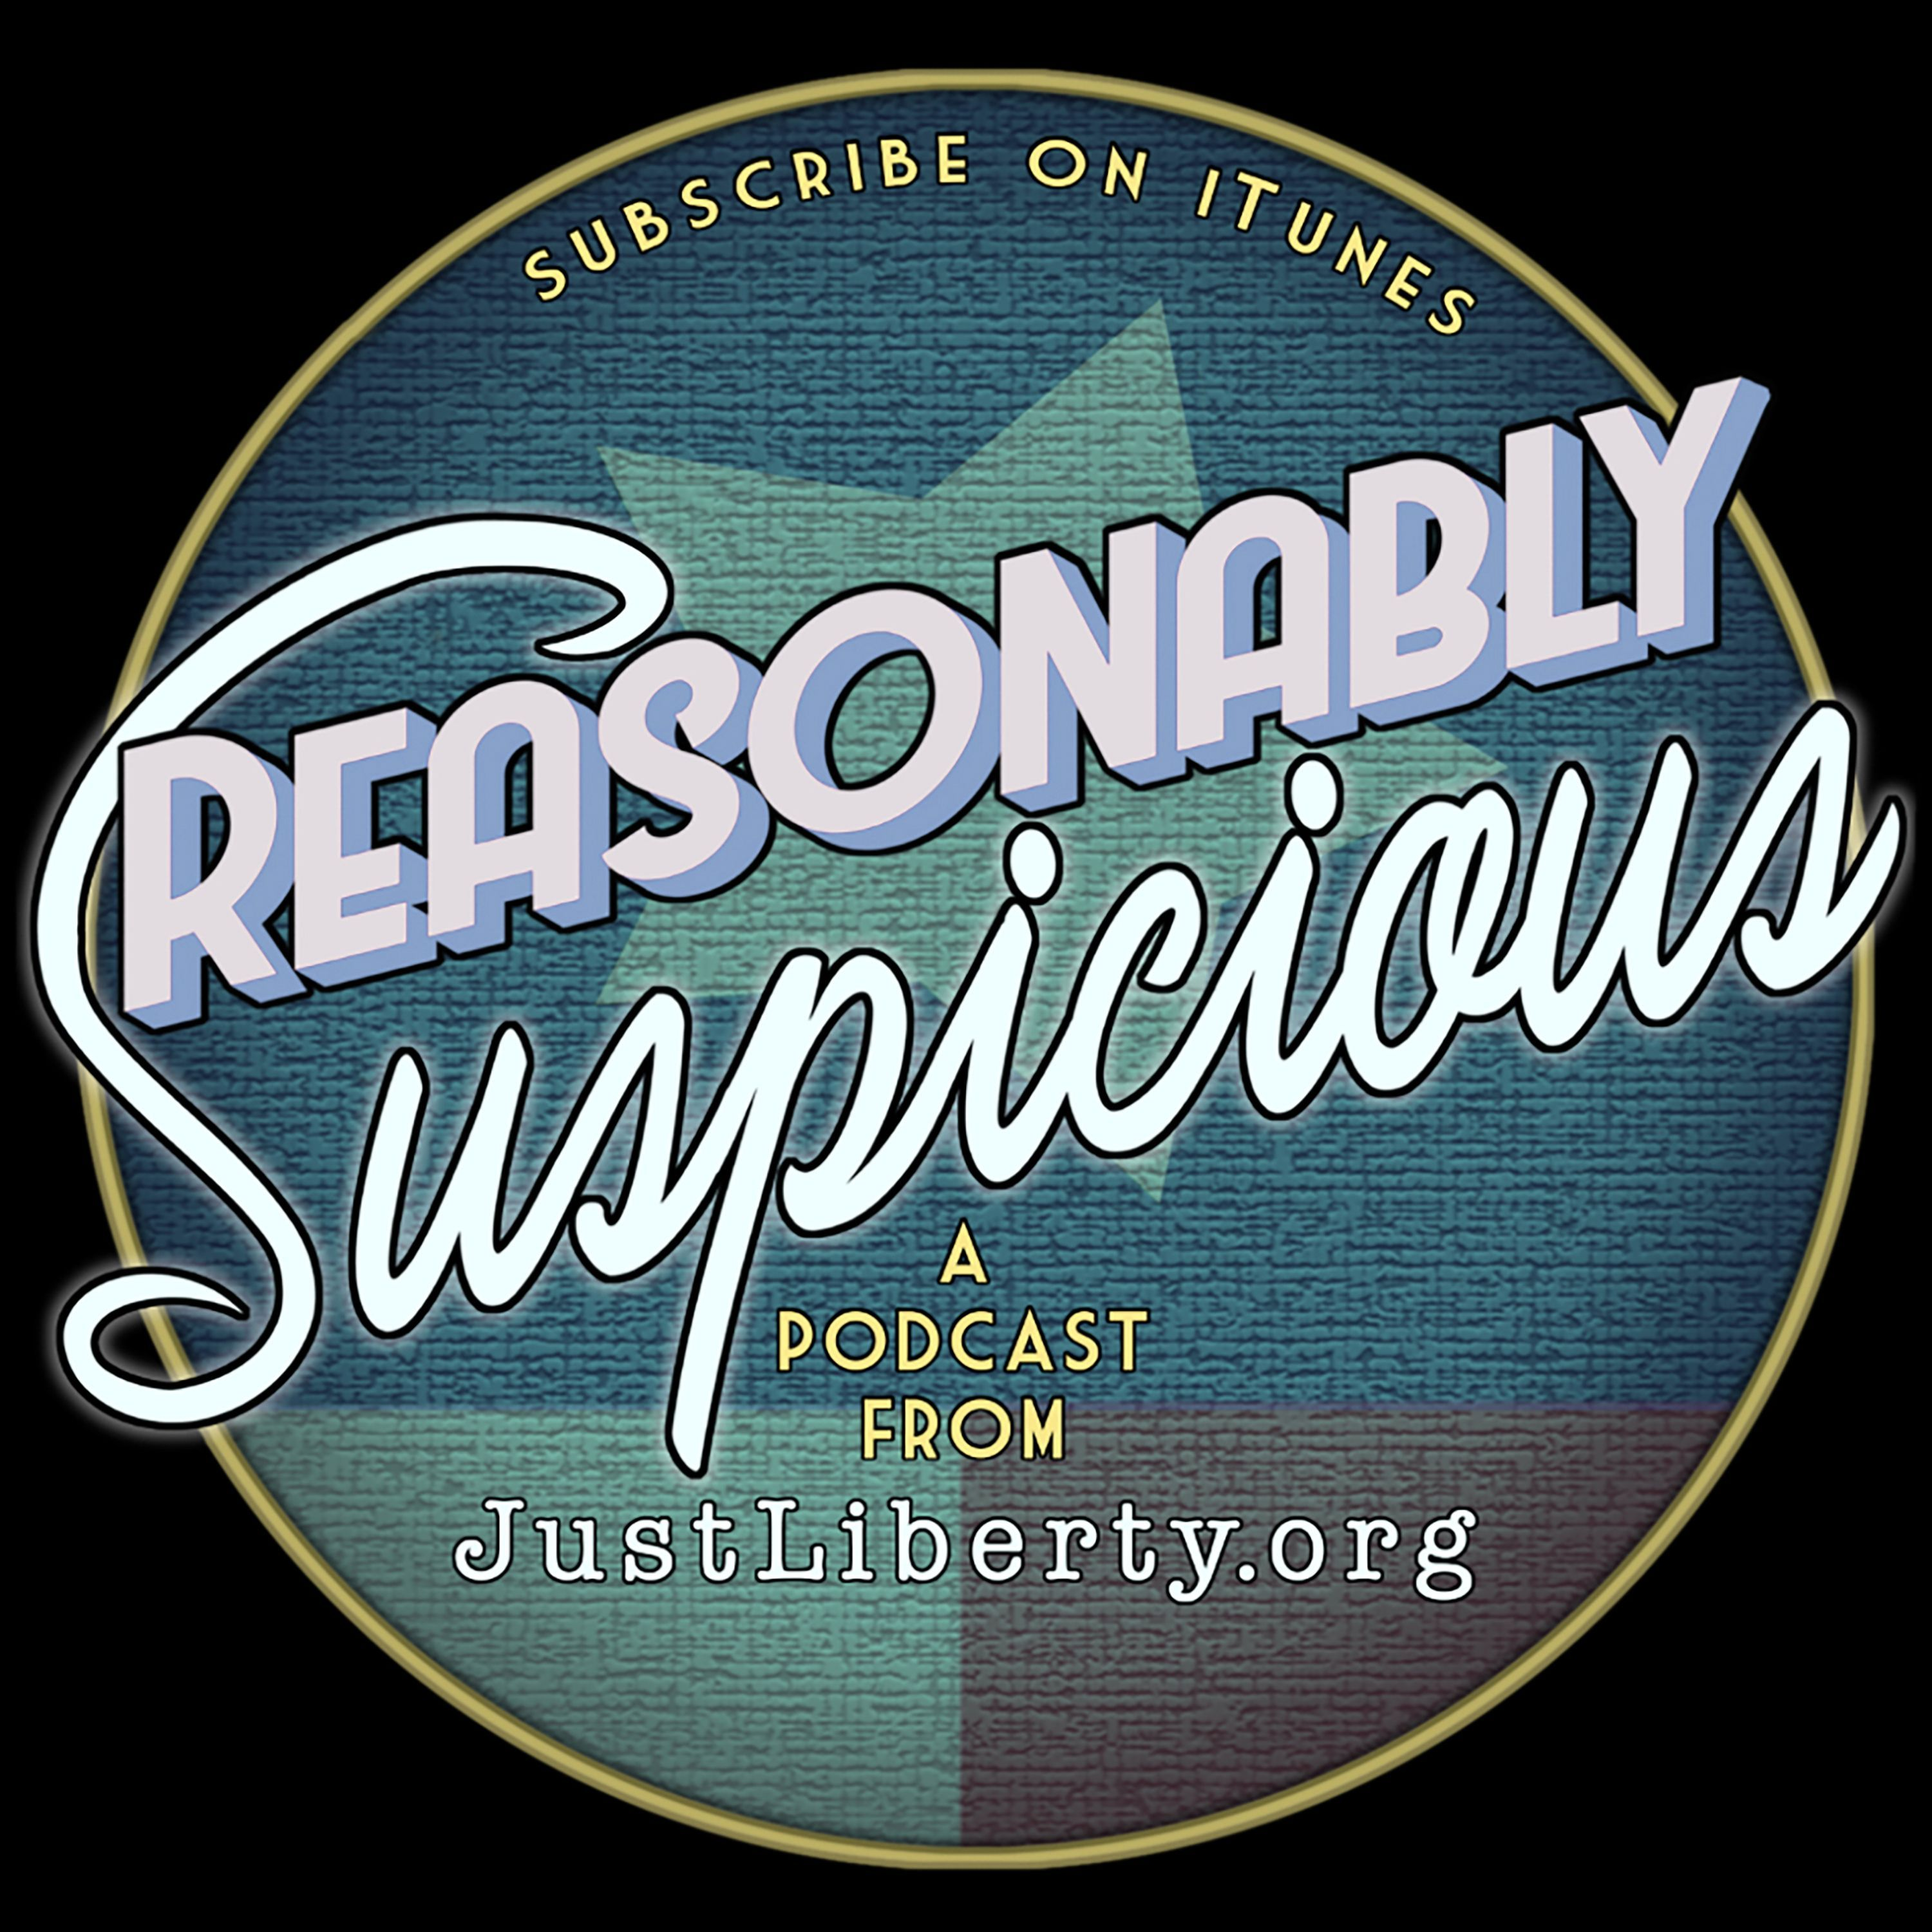 Reasonably Suspicious September 2019 #CJreform in a Time of Demagoguery